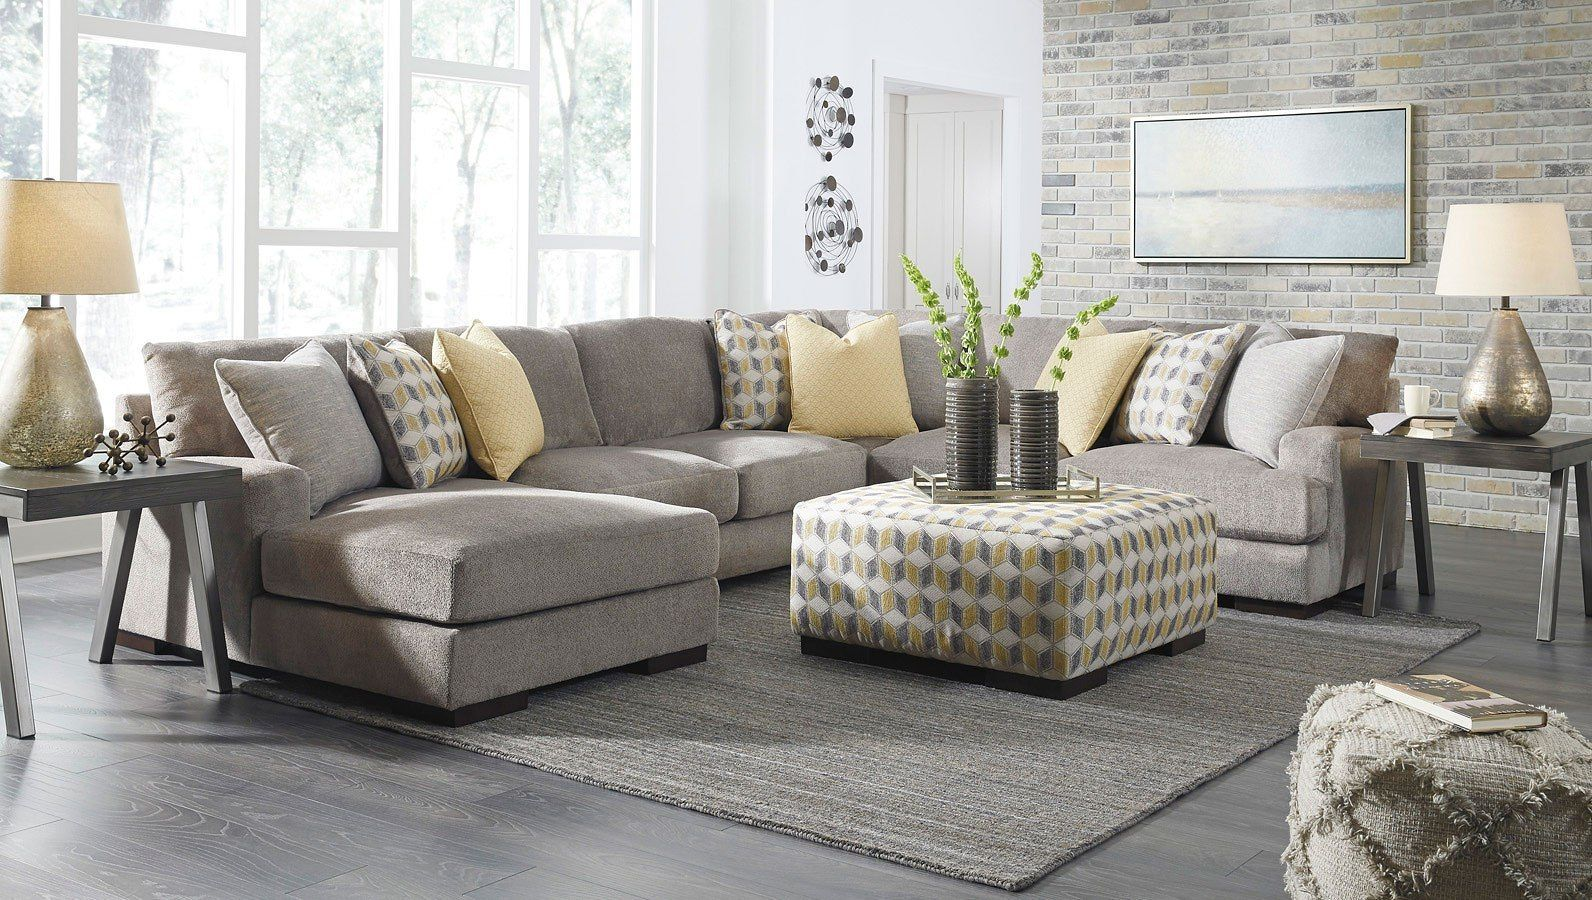 Ultimate Benchcraft Furniture Review